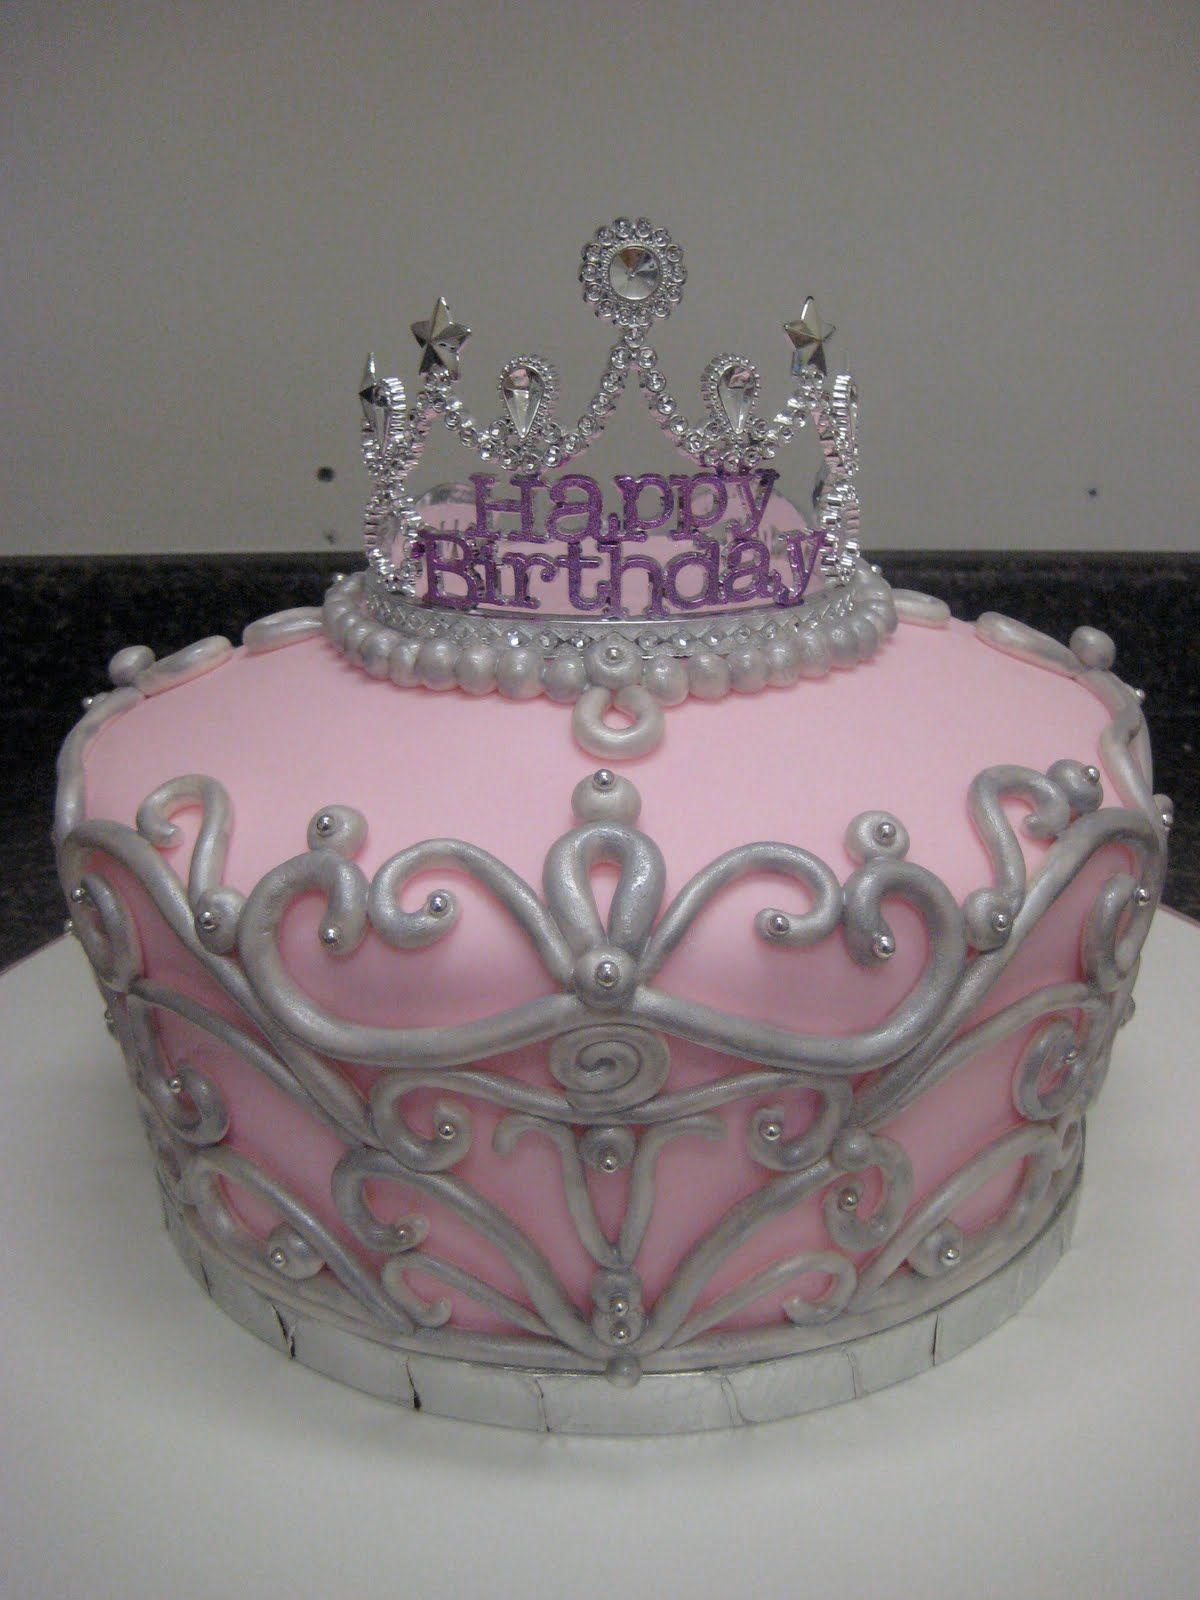 Cake Designs With Crown : crown cake..I love it! Let them eat CAKE! Pinterest